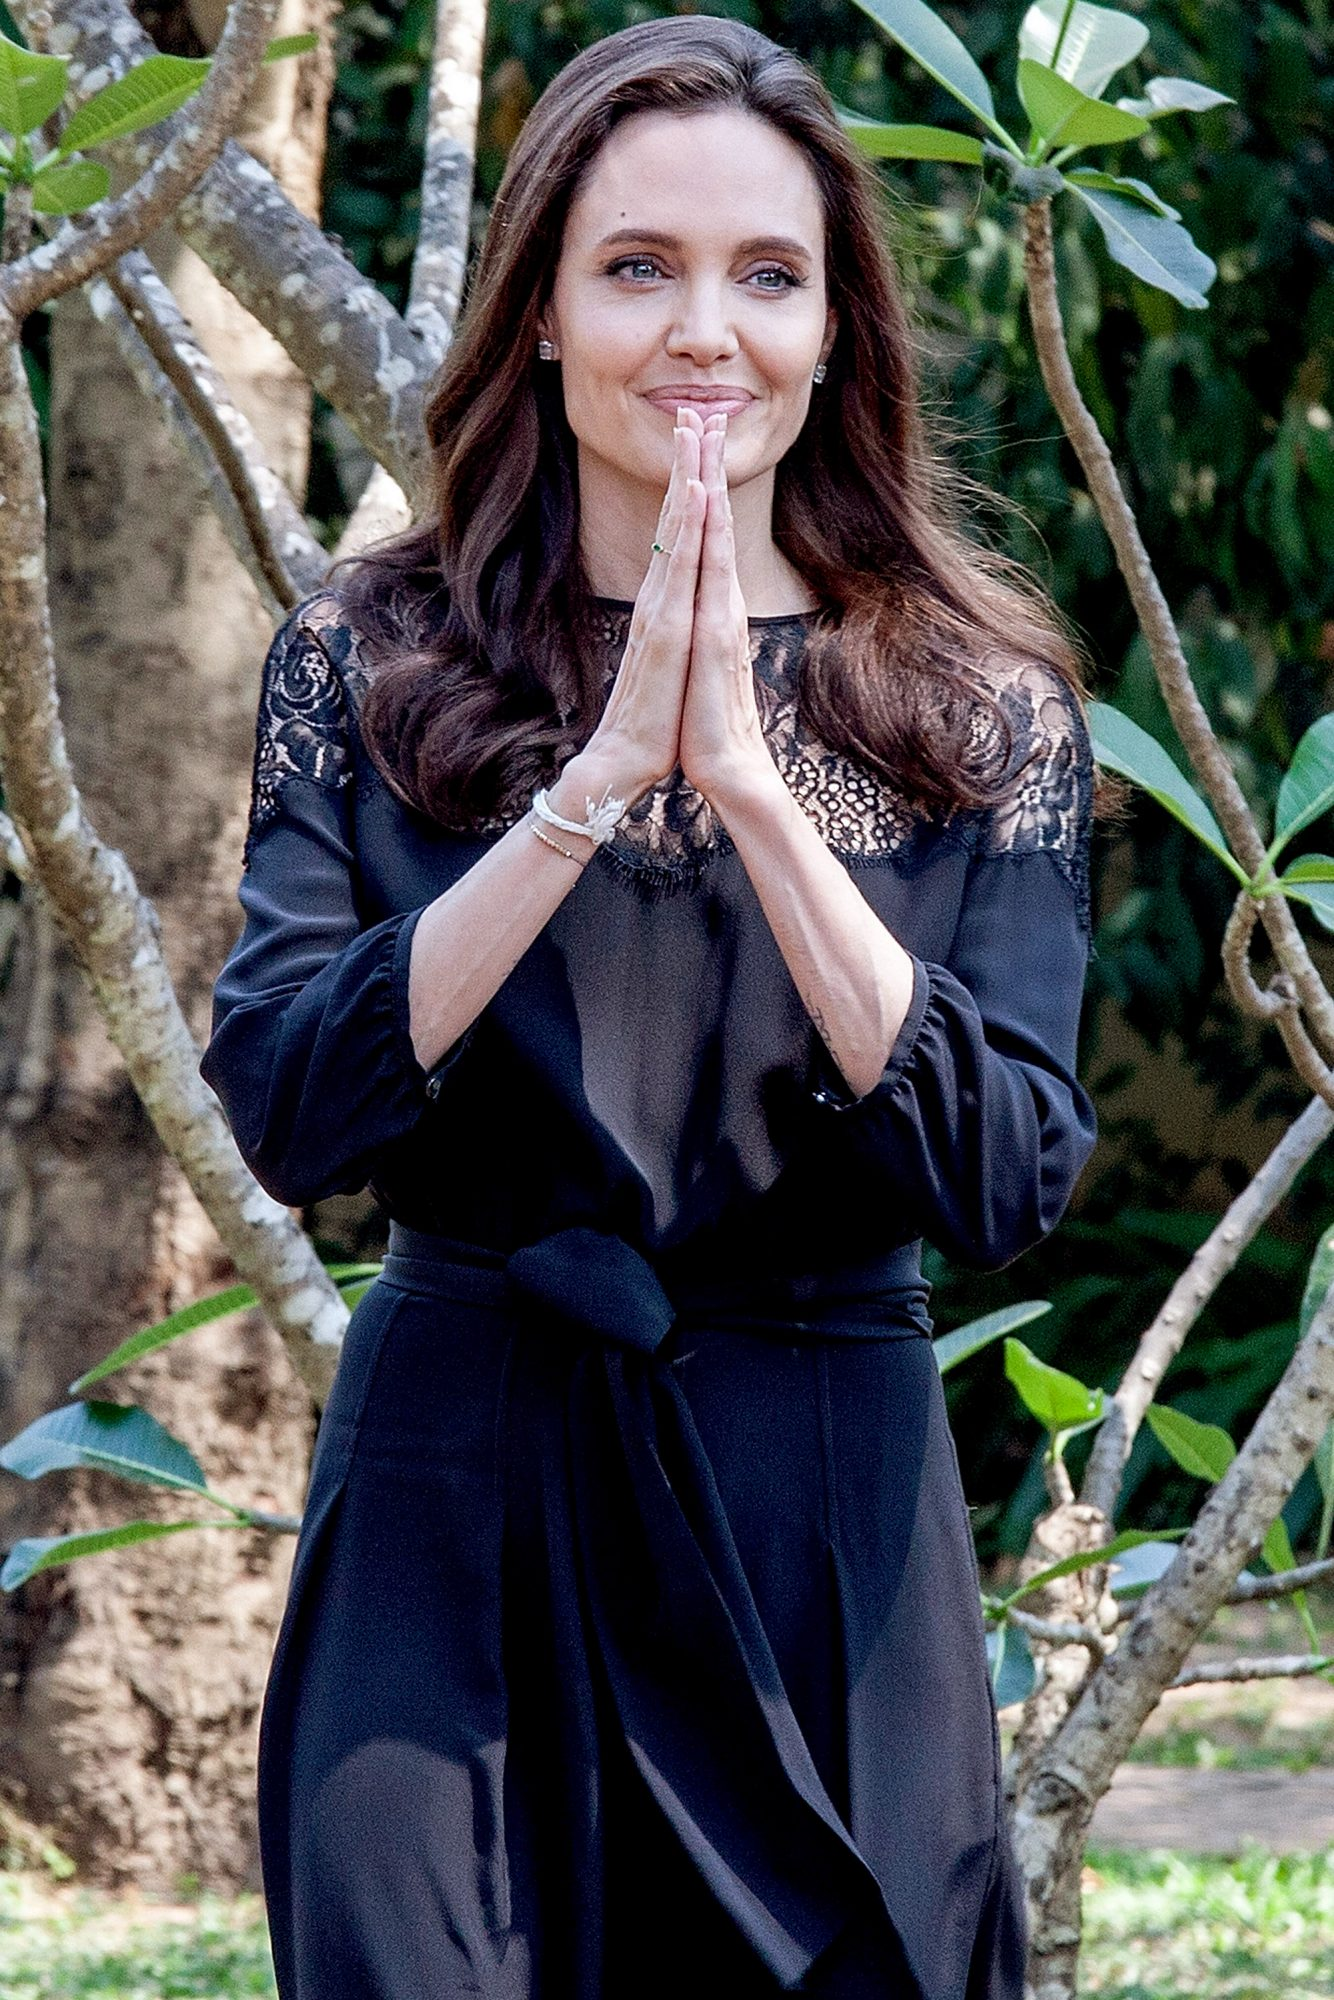 """SIEM REAP, CAMBODIA - FEBRUARY 18: Angelina Jolie arrives at a press conference ahead of the premiere of her new film """"First They Killed My Father"""" set up at the Raffles Grand Hotel D'Angkor on February 18, 2017 in Siem Reap, Cambodia. Angelina Jolie is in Siem Reap for the world premiere of her new movie, """"First They Killed my Father,"""" a Netflix-produced adaption of the autobiography by the same name penned by Loung Ung, who lived through the Khmer Rouge regime as a young child. The film will be screened Saturday night in the Angkor Wat temple complex, and released later this year on Netflix. (Photo by Omar Havana/Getty Images)"""